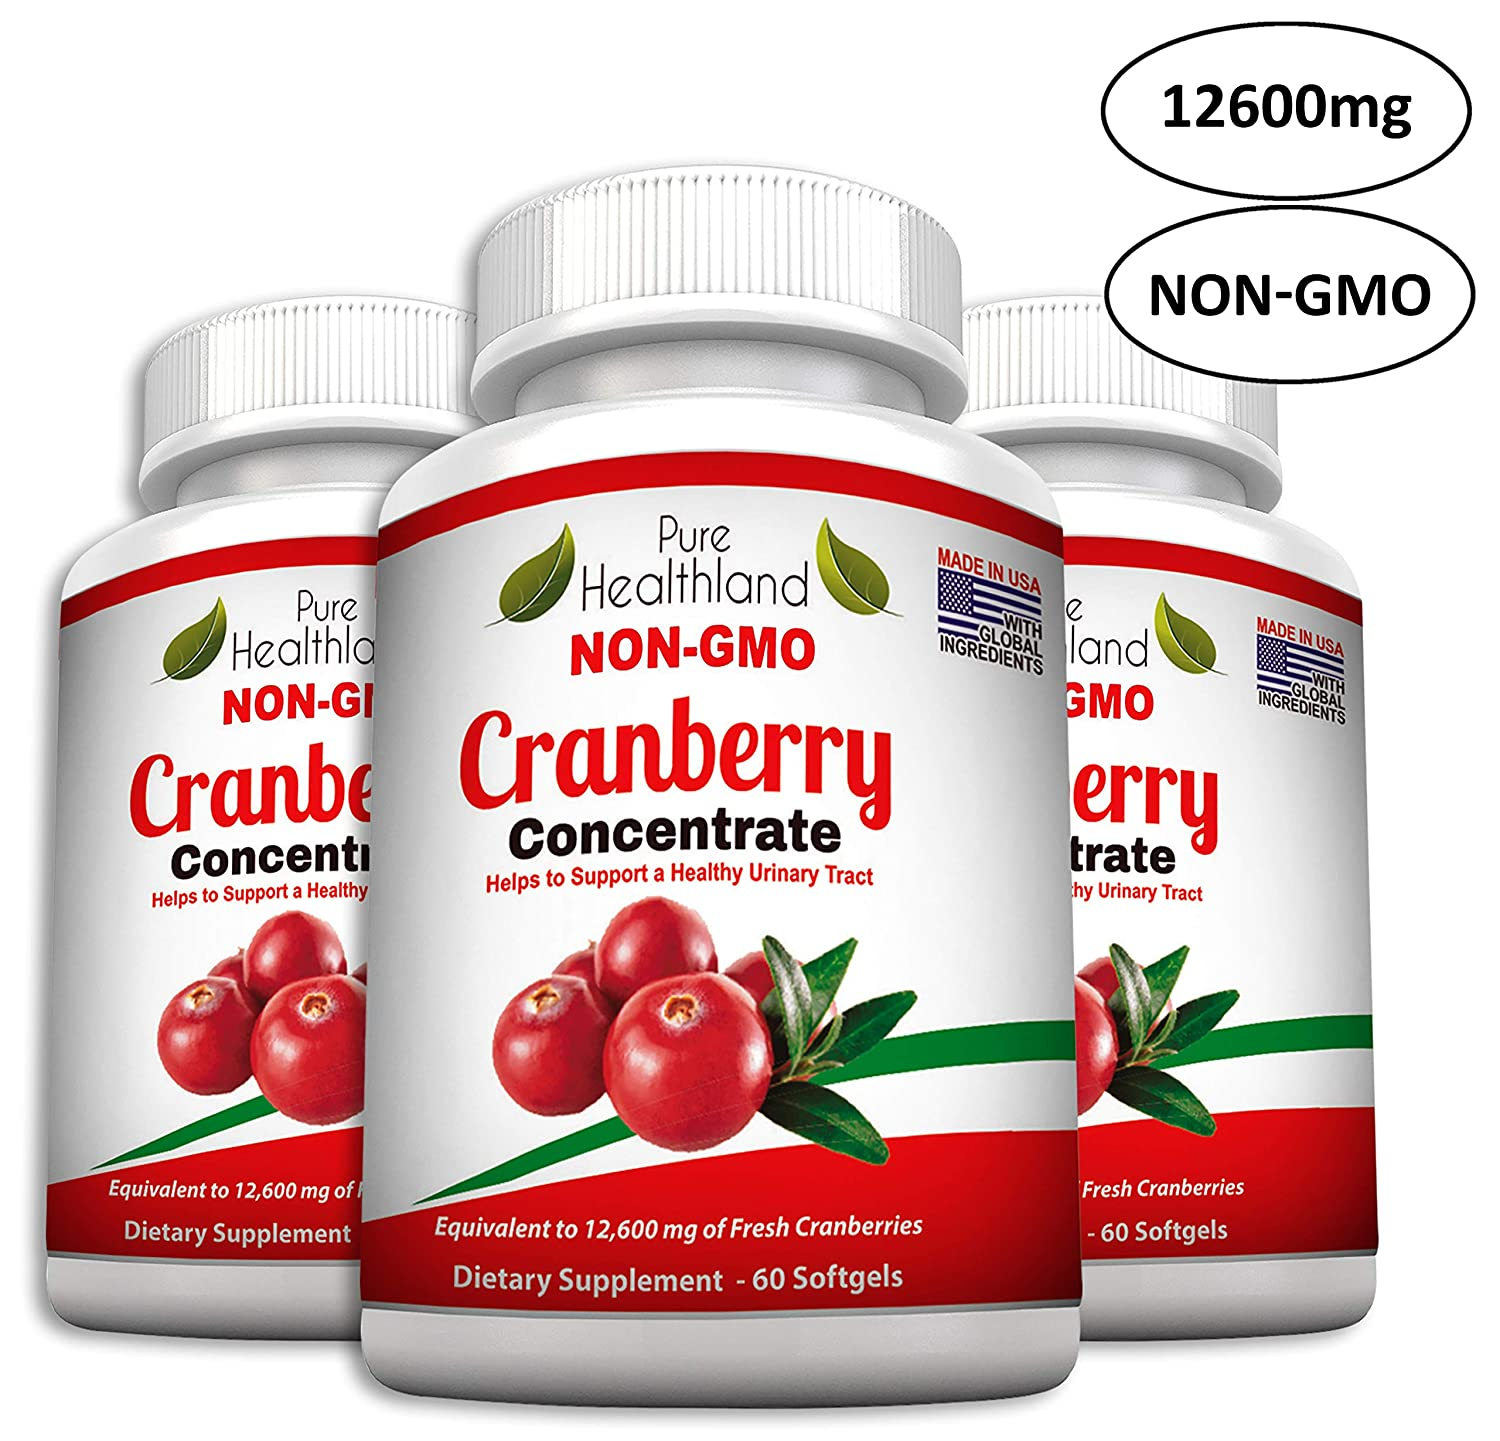 Discussion on this topic: How to Choose the Right Cranberry Supplement, how-to-choose-the-right-cranberry-supplement/